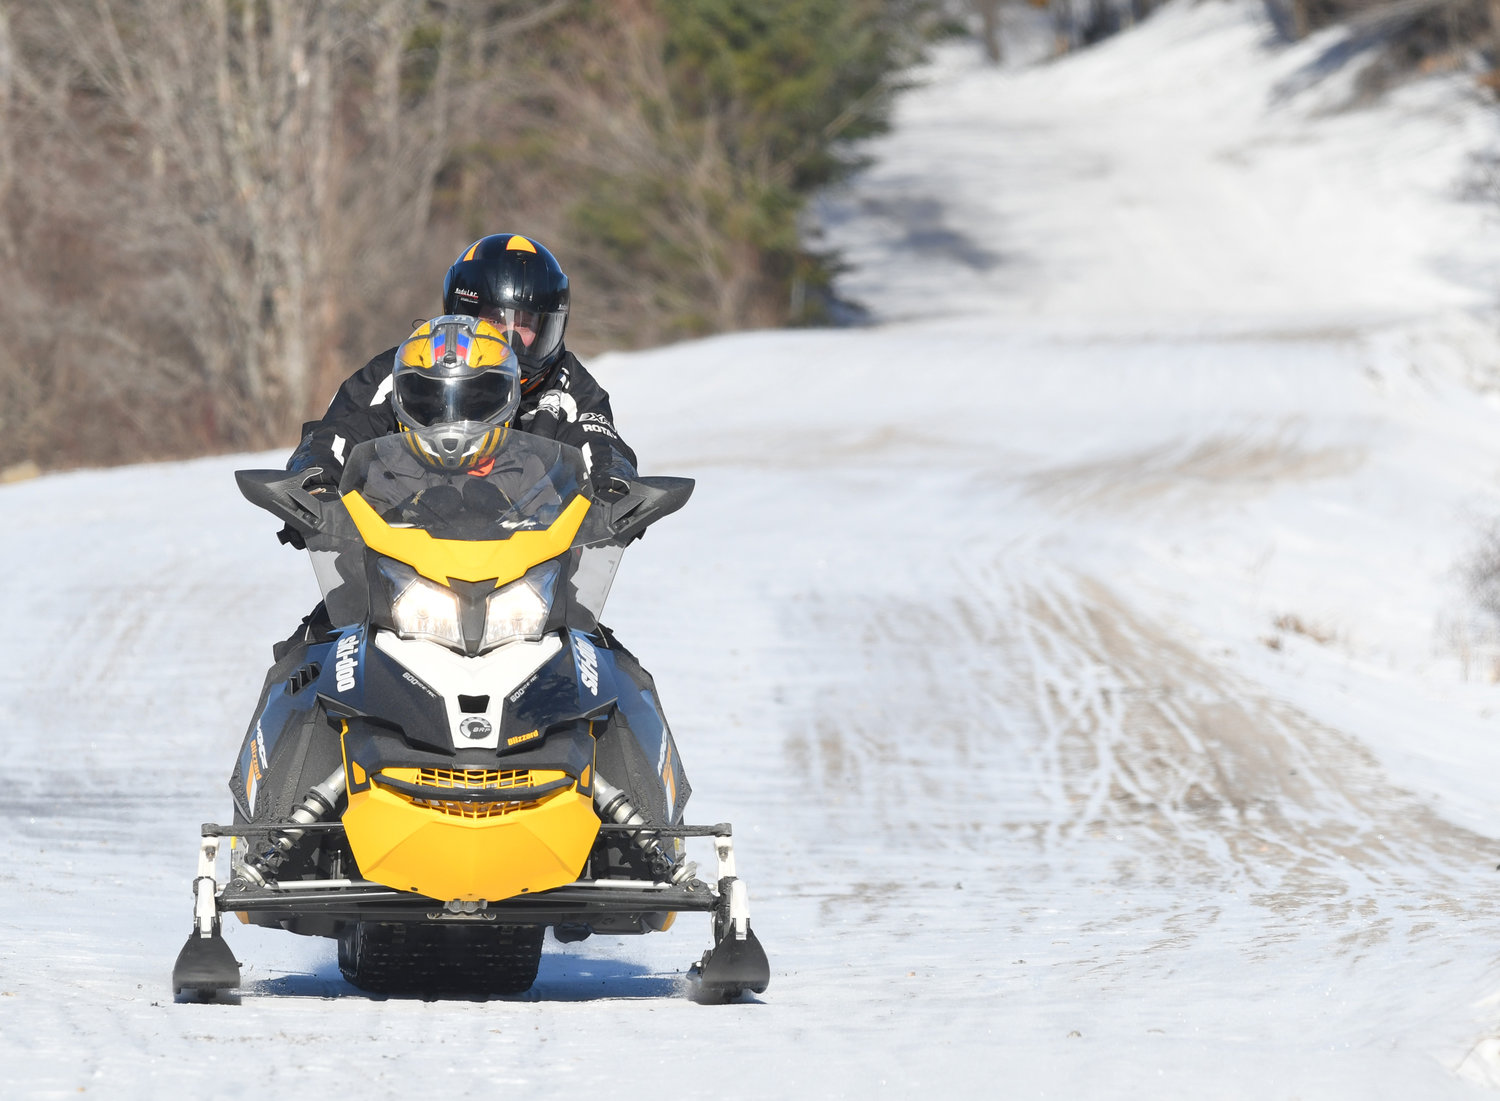 MAKING THE BEST OF IT — A lone snowmobile makes its way south on North Street in Old Forge Wednesday. The lack of snow is hampering the winter past time in the north country, but trails in the Old Forge area have kept a minimal but ridable base through recent thaws. Those in the vital snowmobile industry are encouraged by forecasts of more seasonable weather.